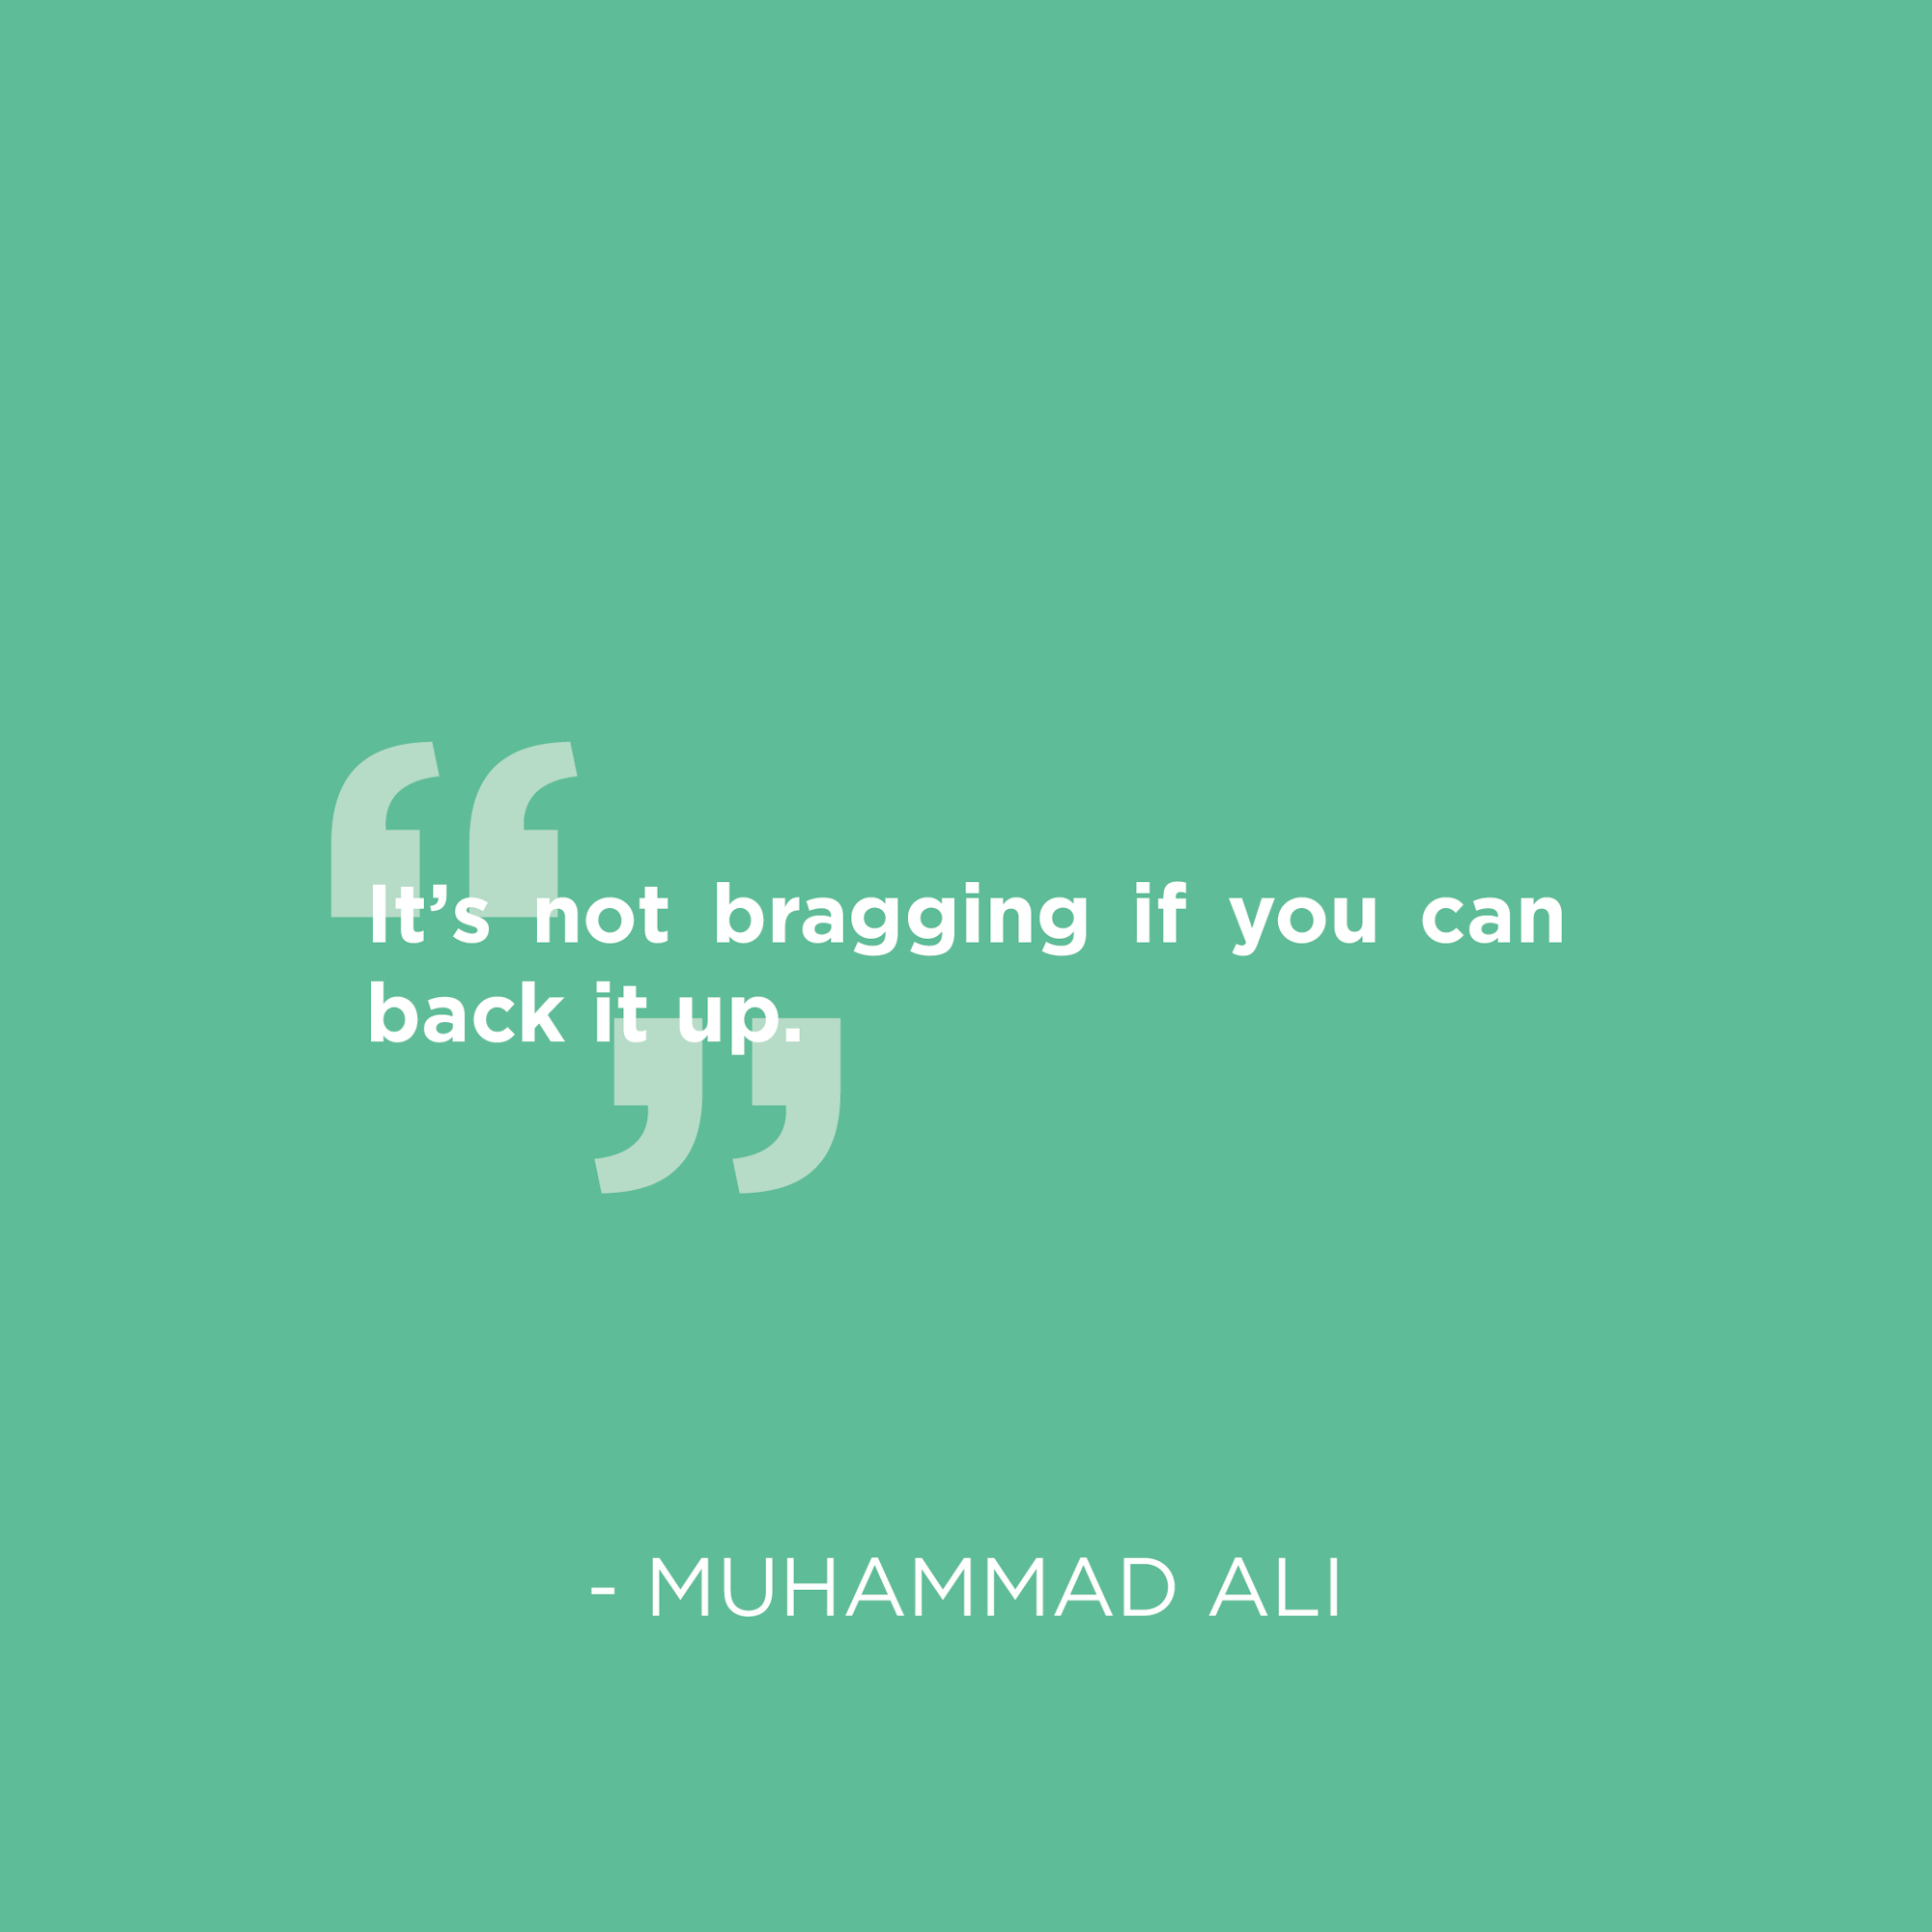 Muhammad-Ali-bragging-quote.png